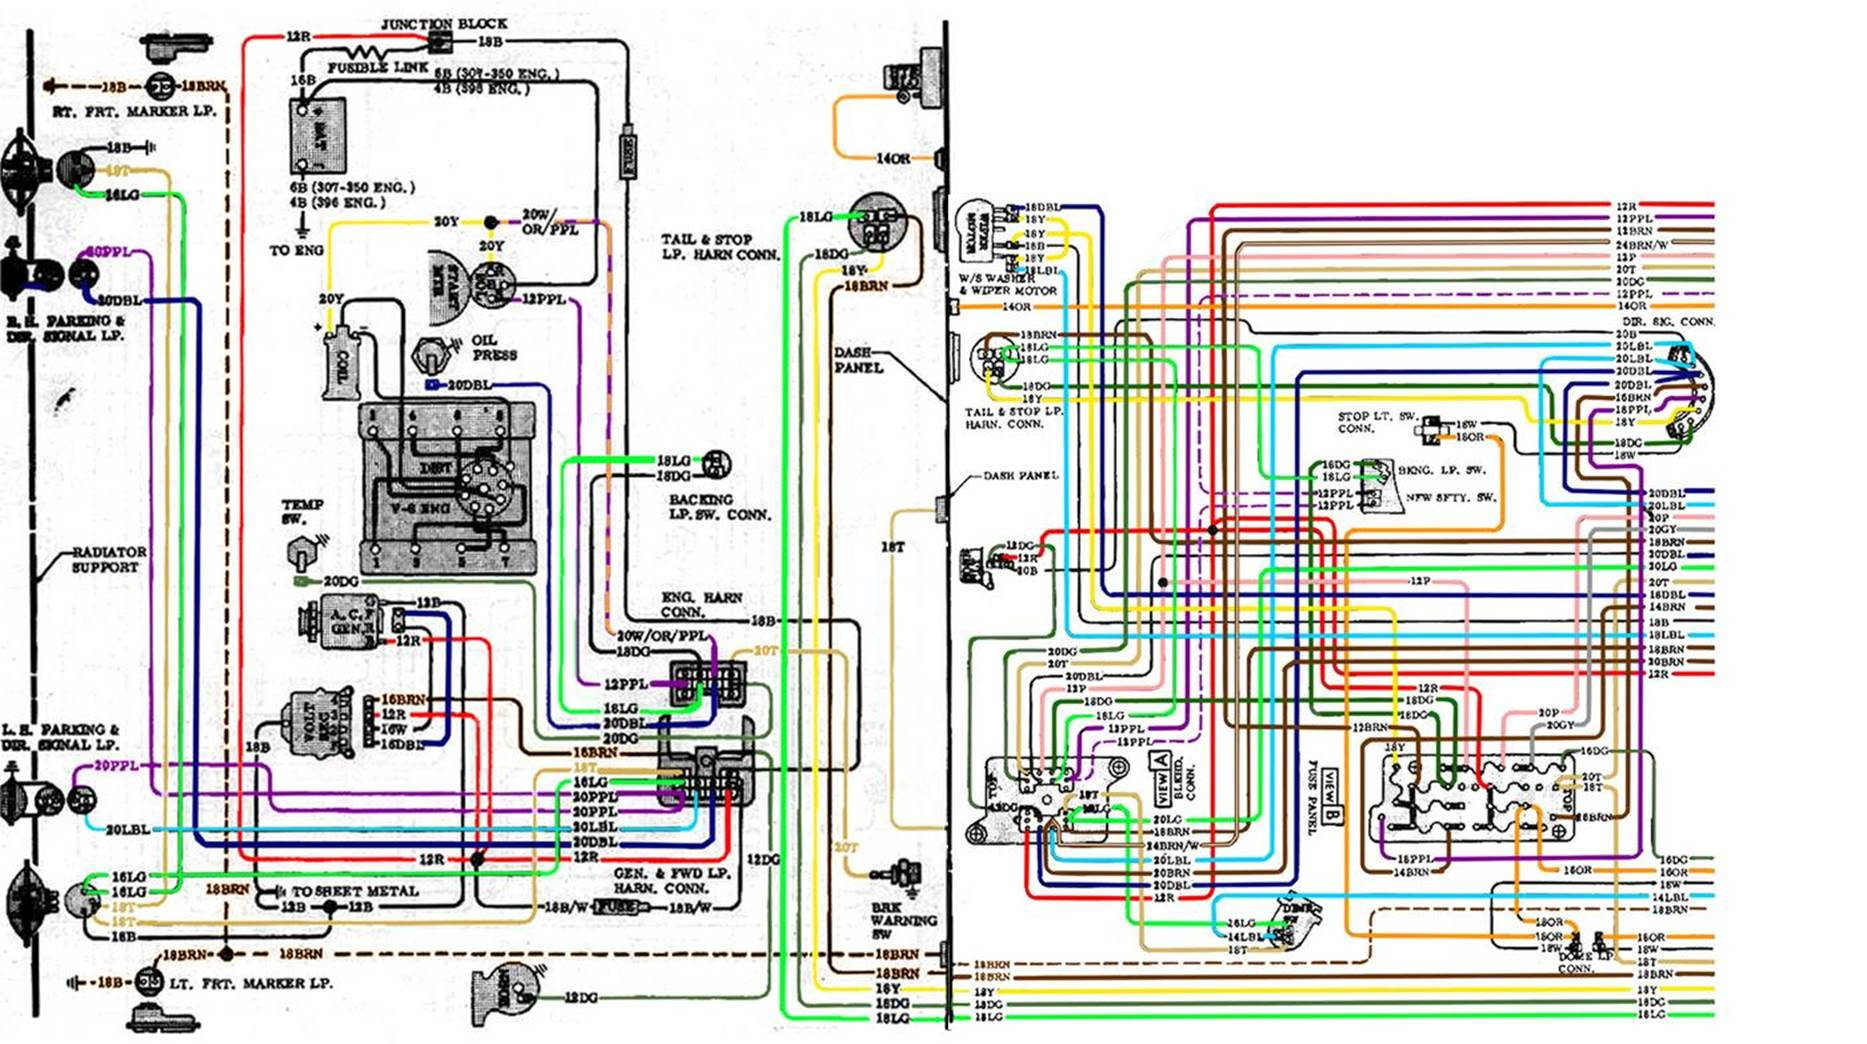 image002 67 72 chevy wiring diagram  at aneh.co